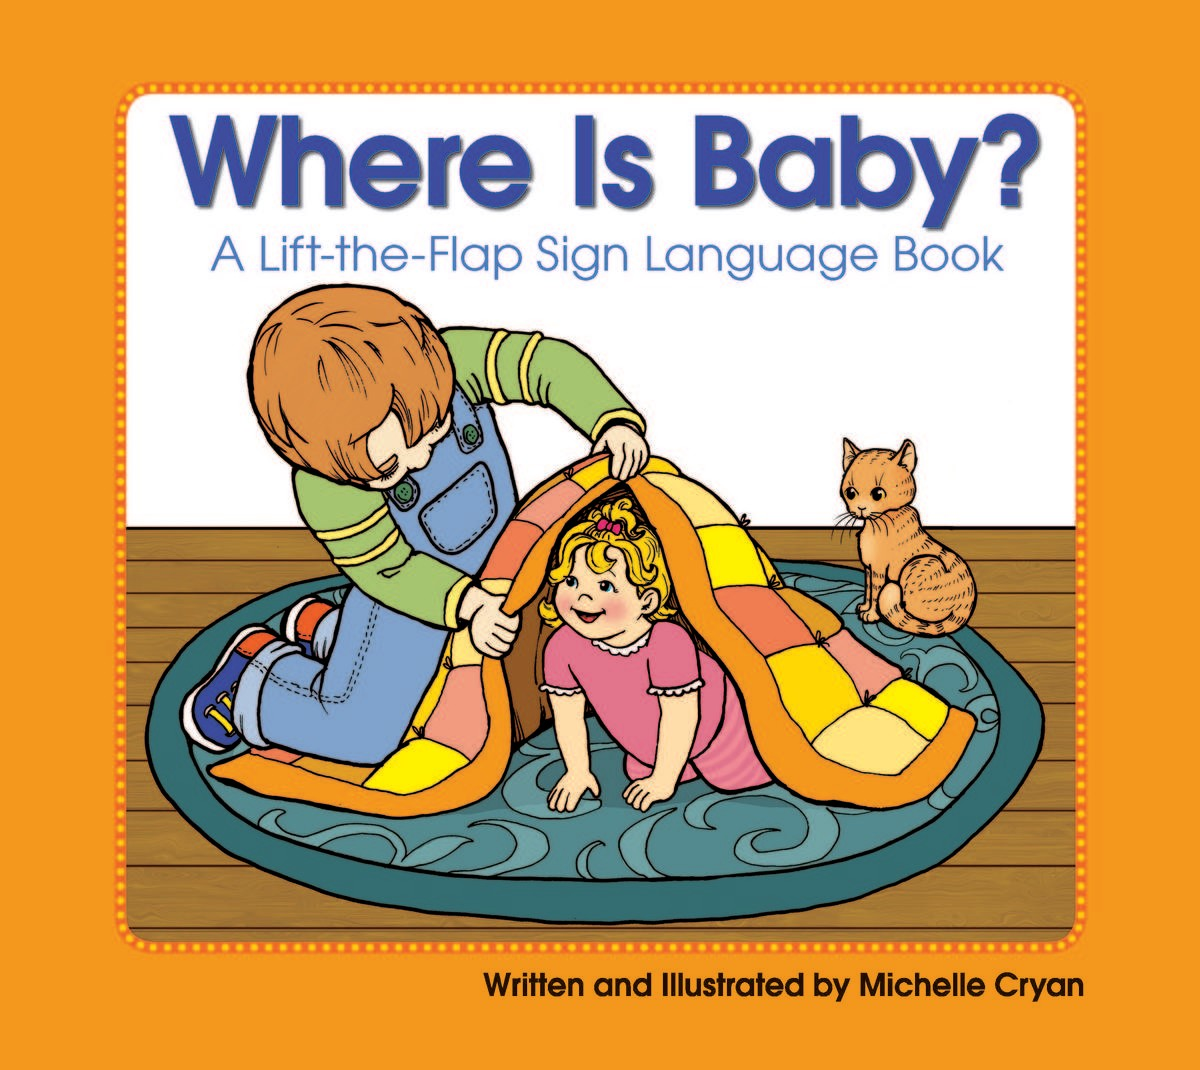 Where Is Baby?: A Lift-the-Flap Sign Language Book Michelle Cryan